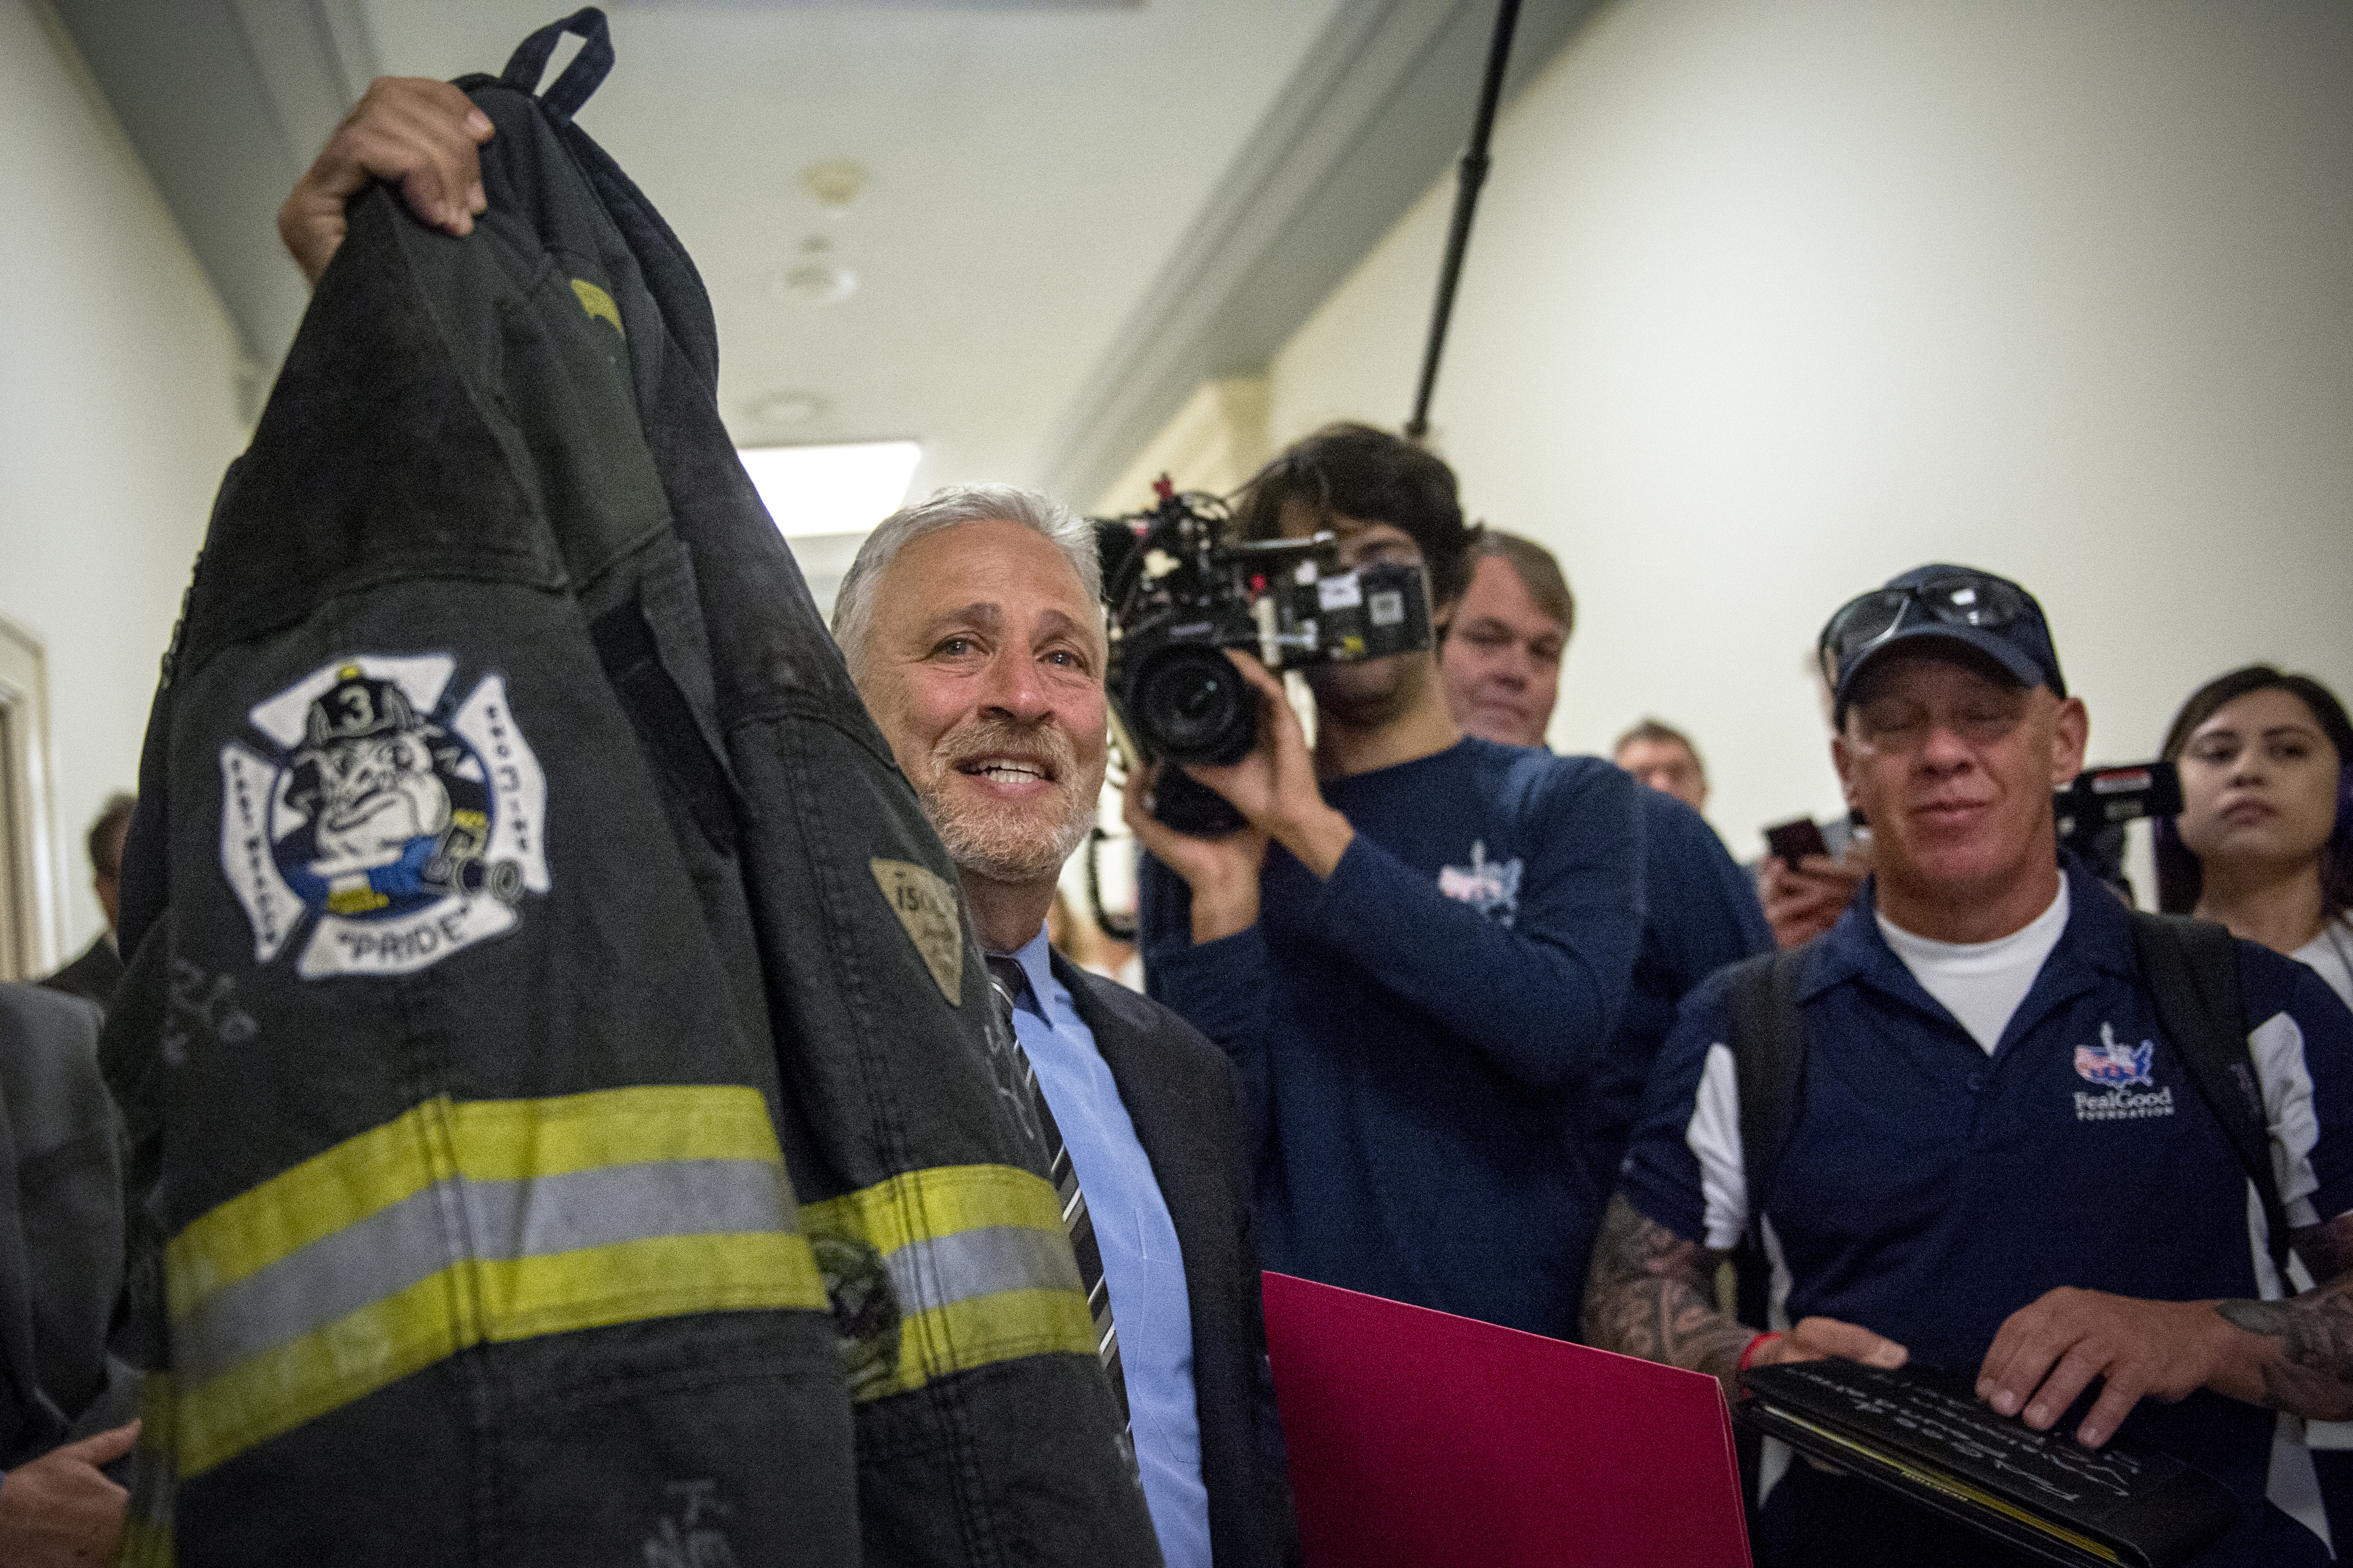 House passes funding for 9/11 first responders after public shaming from Jon Stewart